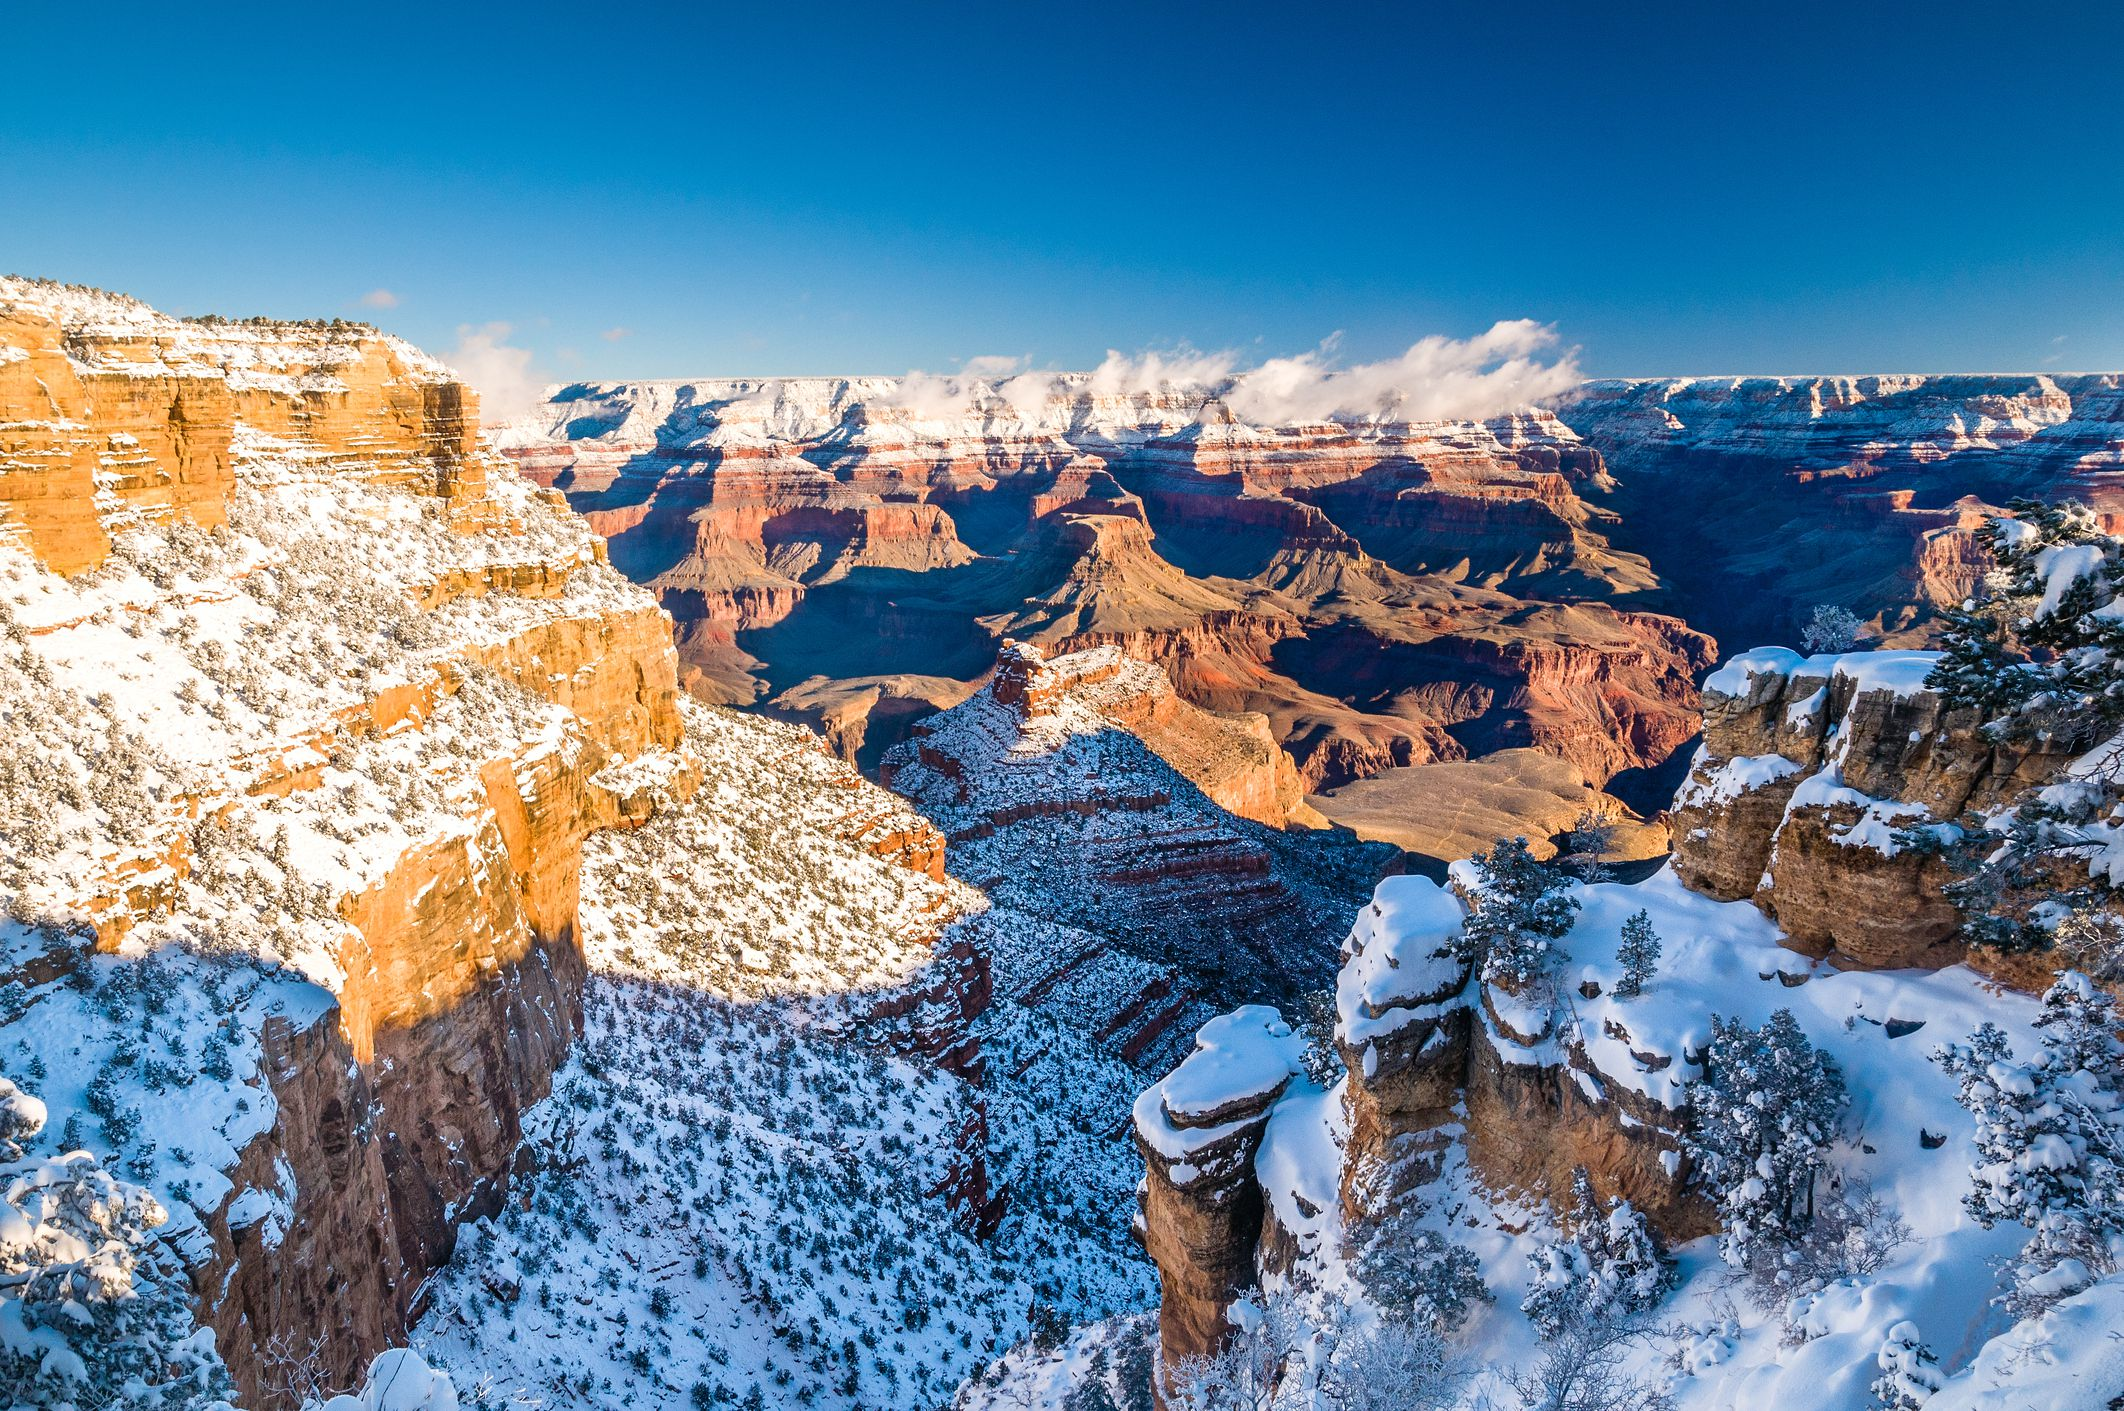 Grand Canyon in winter with a layer of snow